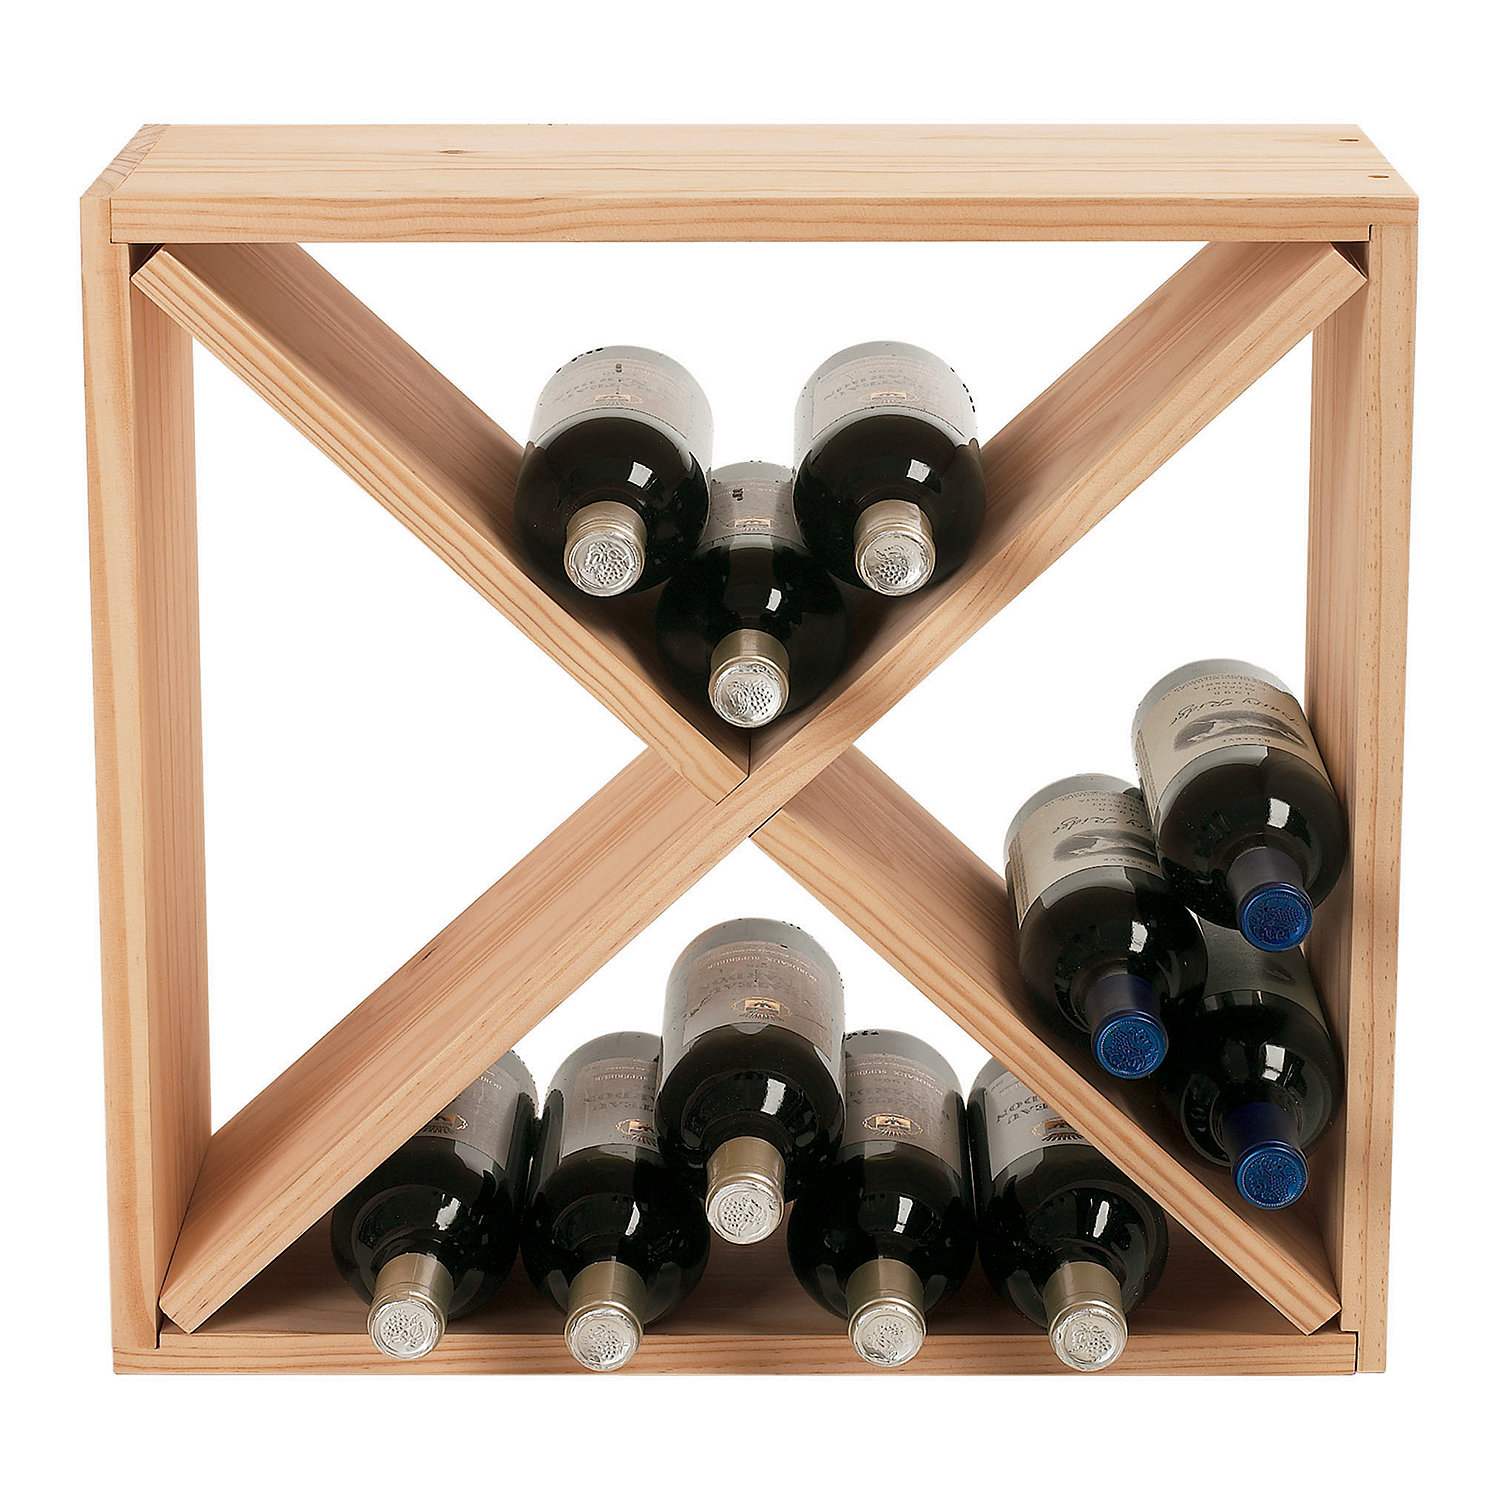 Build Your Own Wine Rack Kits Mycoffeepot Org